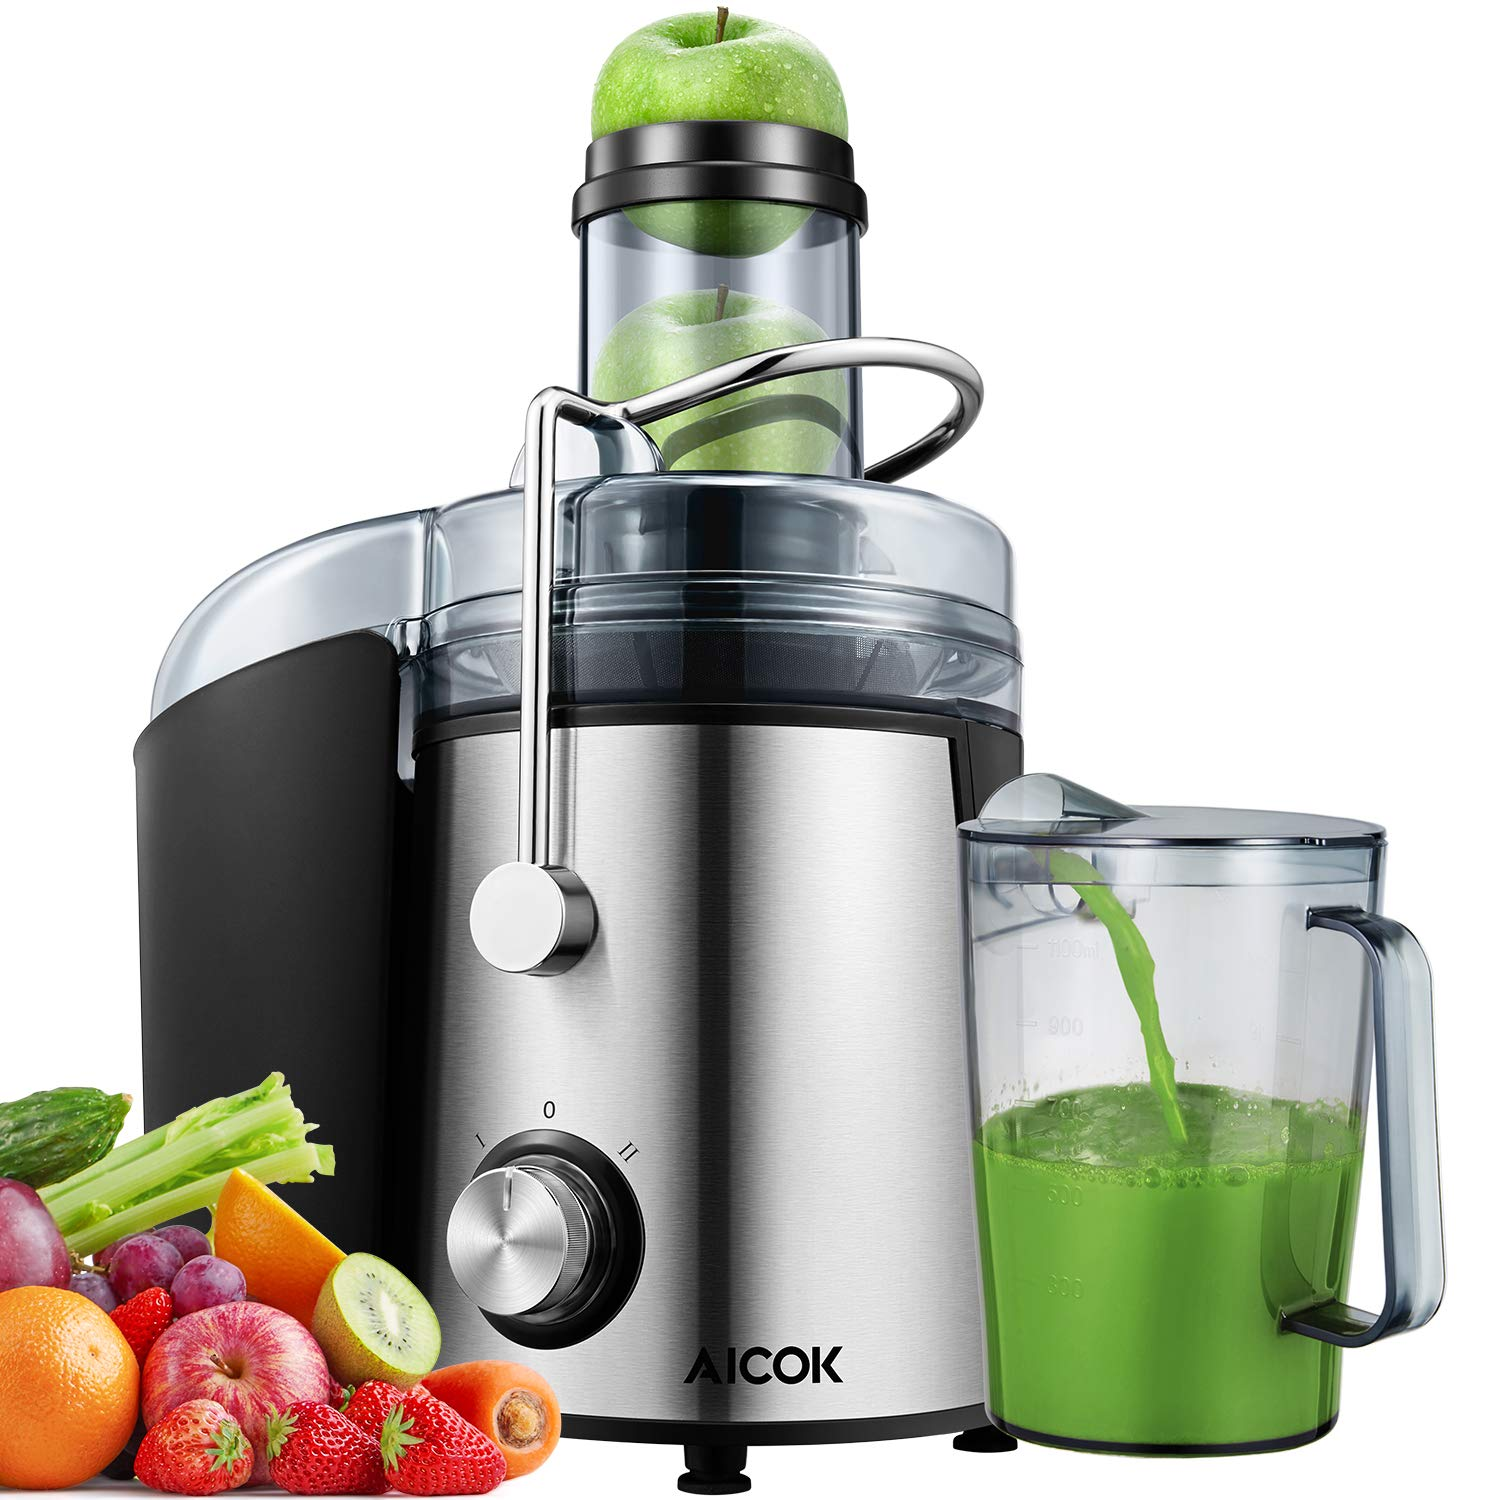 Juicer 1000W Powerful Juice Extractor, Aicok 76MM Wide Mouth Centrifugal Juicer Machine for Whole Fruit and Vegetable, Dual Speed Setting, Anti-drip Function, BPA Free